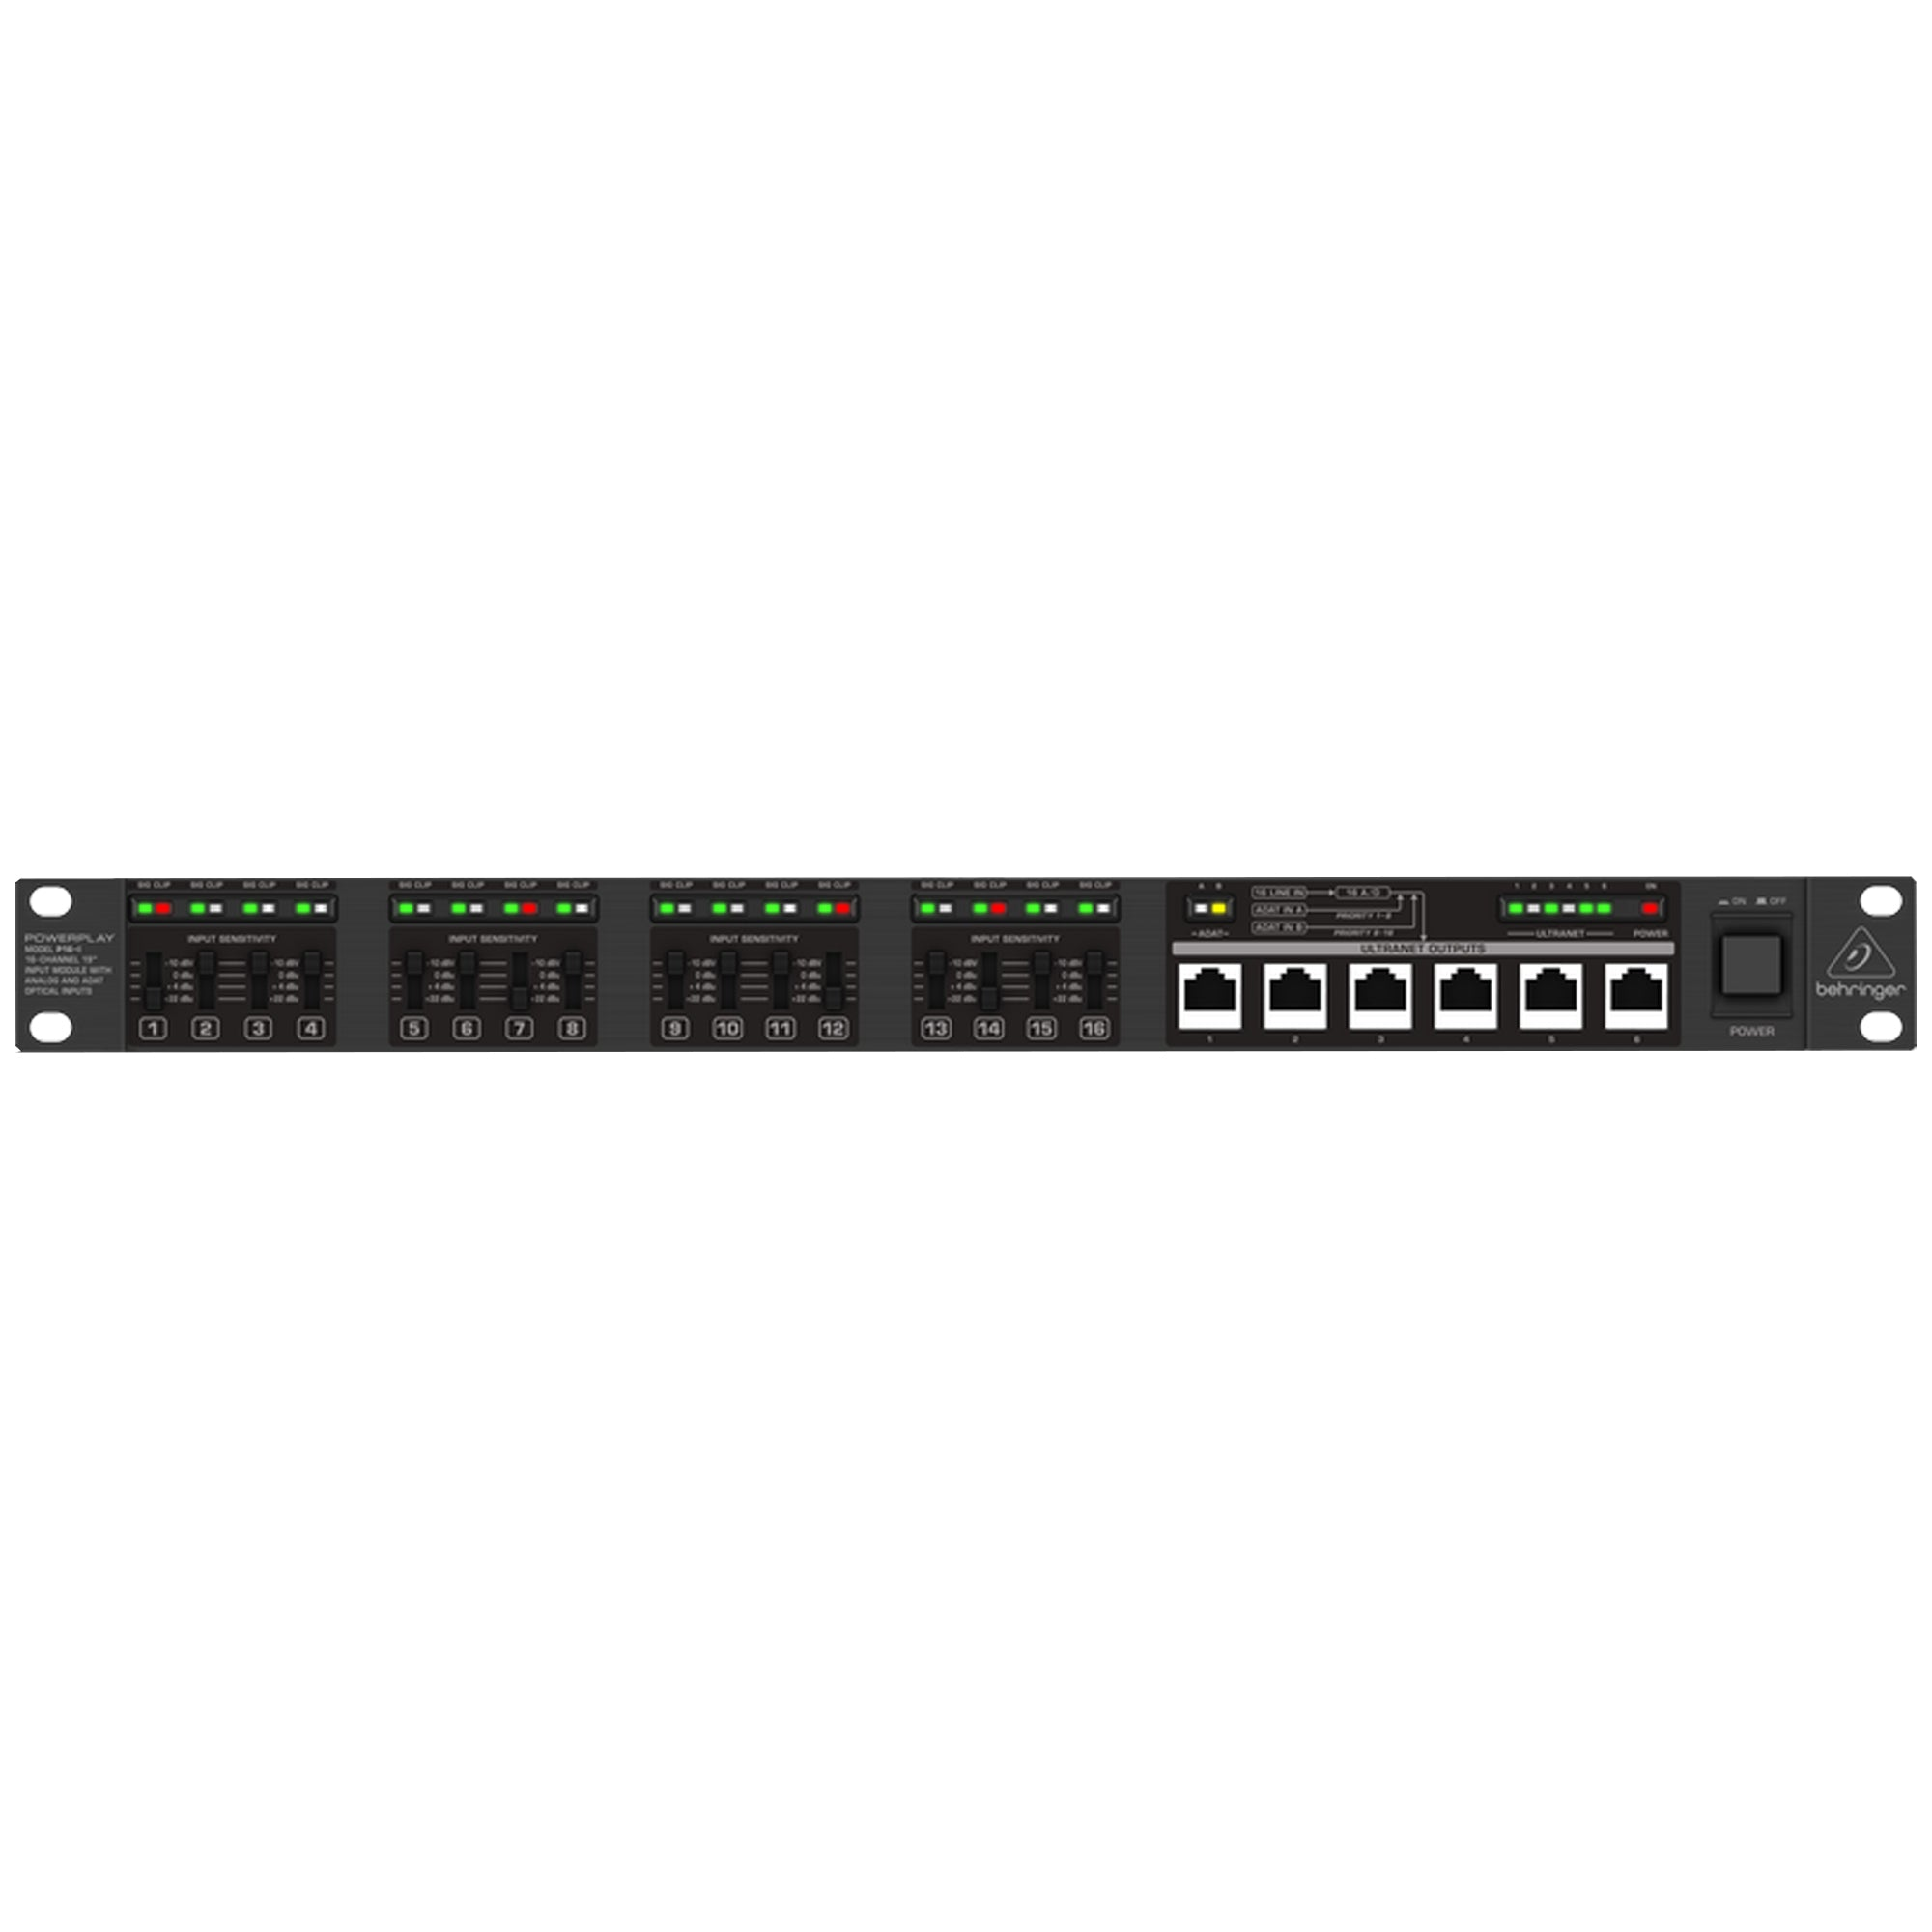 Https Daily 5 Channels 2 Octave Graphic Equaliser By 4558 1 4e7c13c5 2574 4aff 800d A610922686e2v1510247427